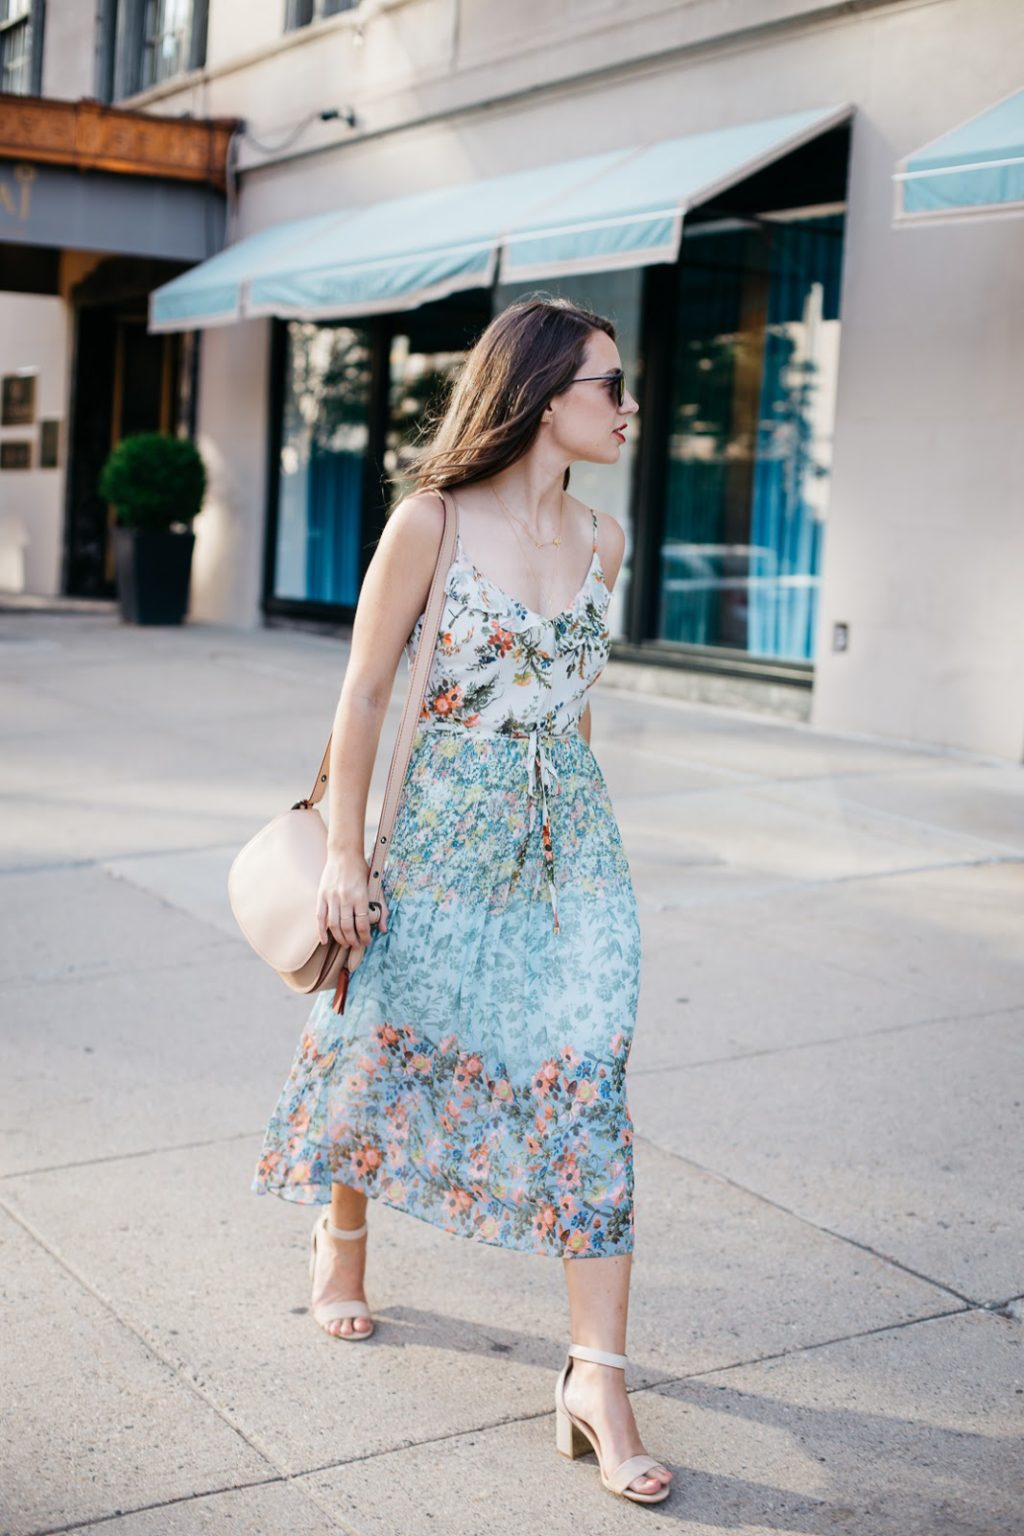 e9f848d3f13 Taking my new ditzy print Oasis dress for a summer stroll through Boston